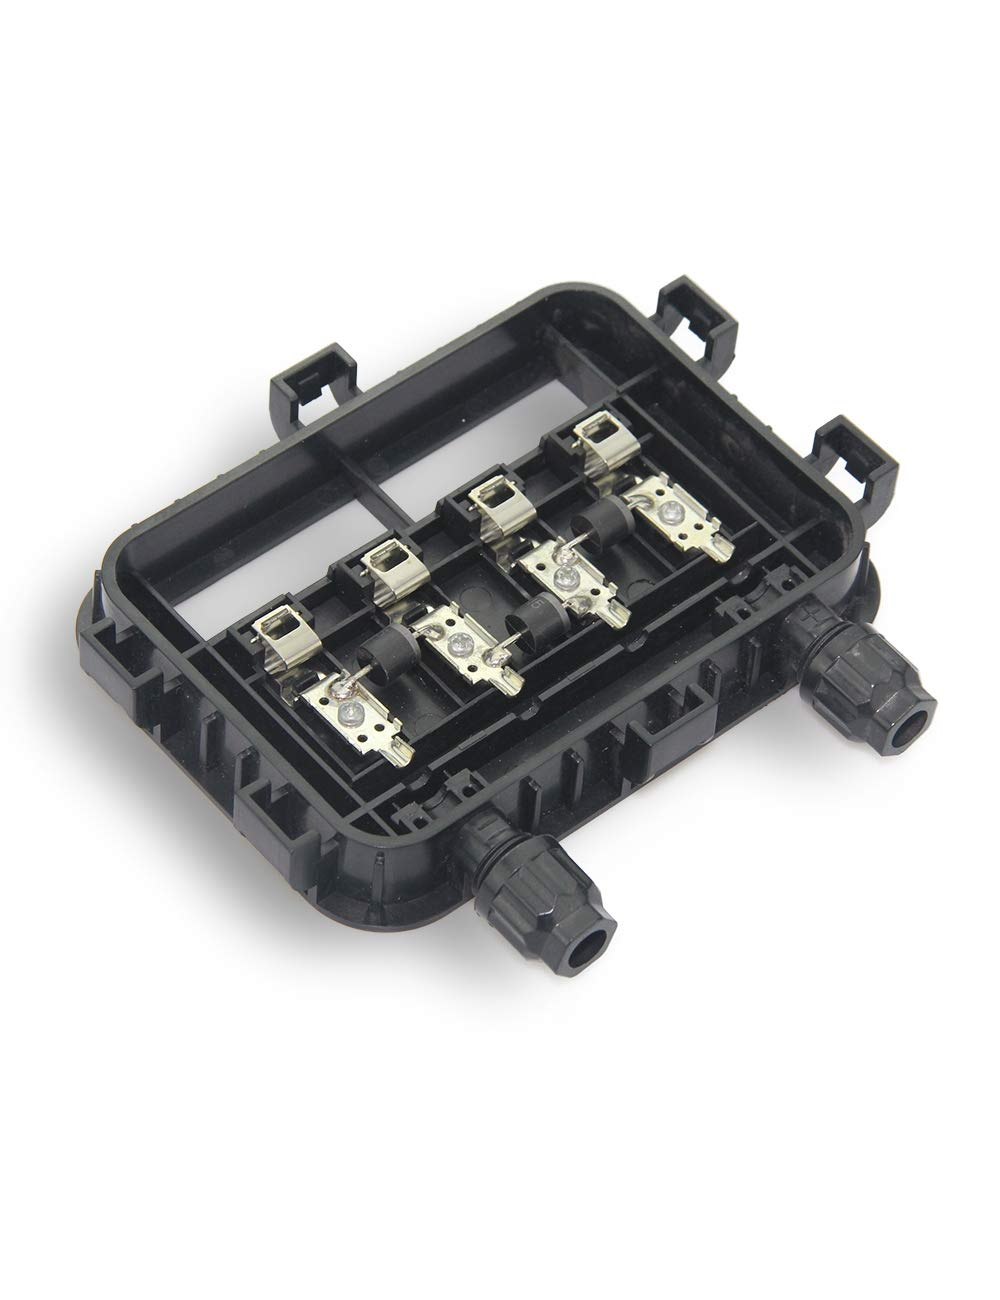 VIKOCELL Photovoltaic Junction Box